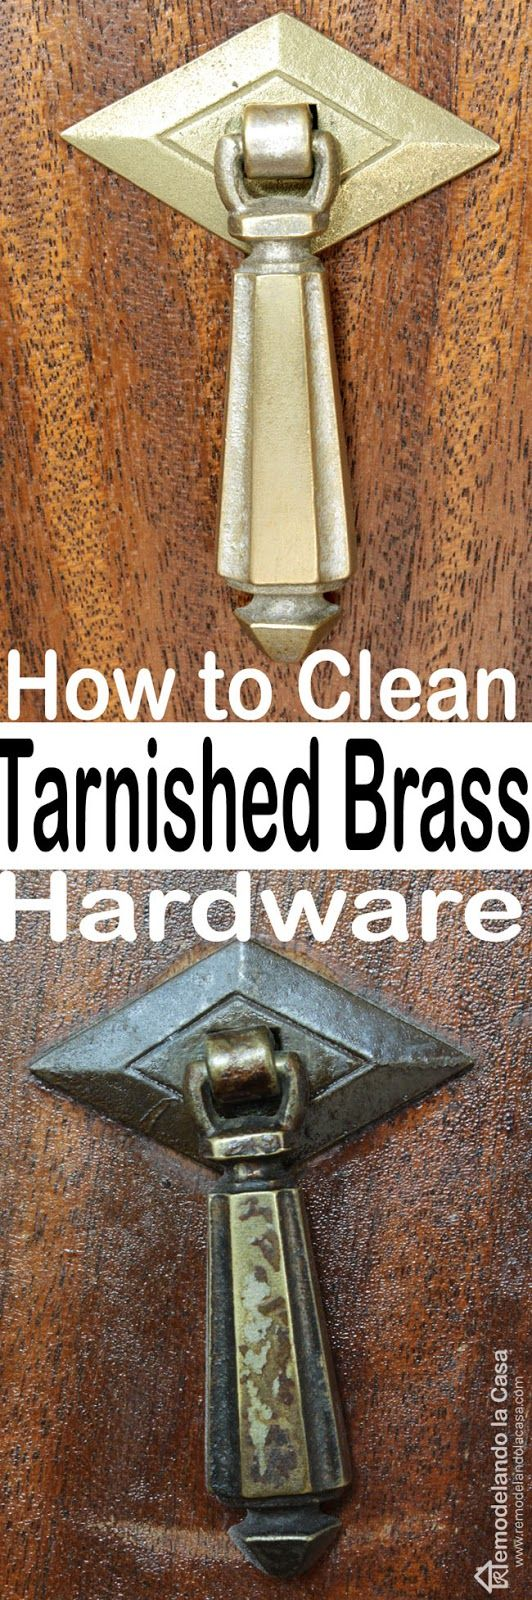 Wow - what a difference! How to Clean Tarnish from Old Hardware